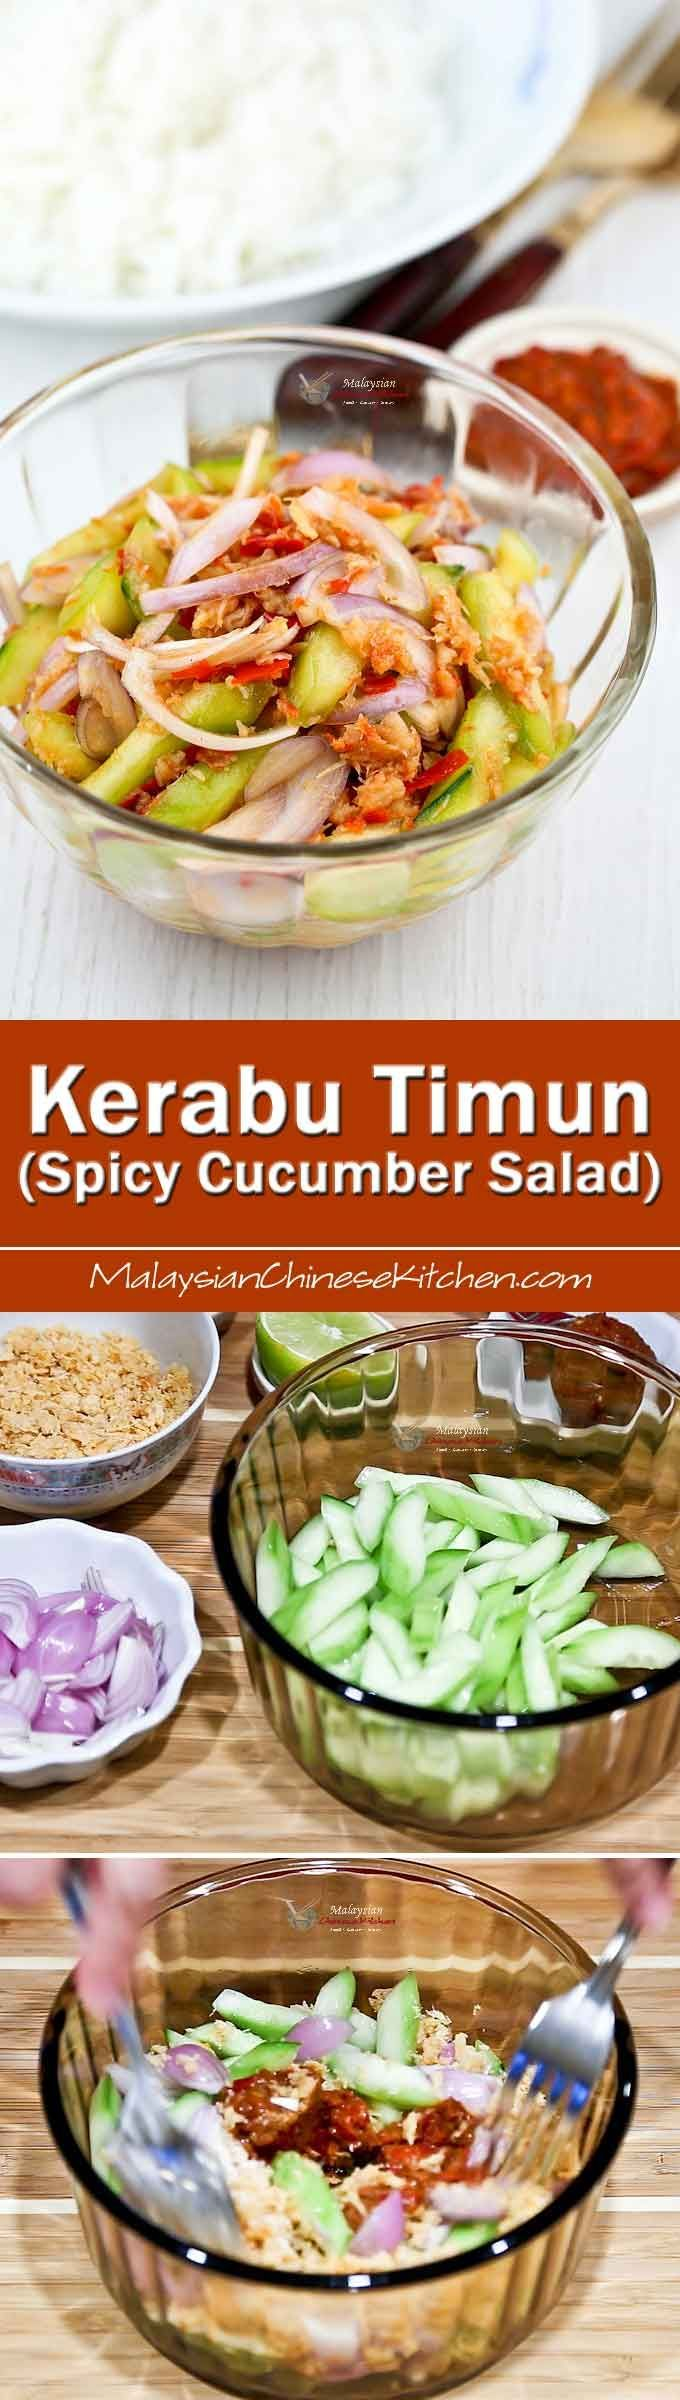 237 best malaysian food images on pinterest malaysian food asian kerabu timun spicy cucumber salad is a spicy and appetizing malaysian salad that is spicy recipesasian food recipesvegetable forumfinder Images